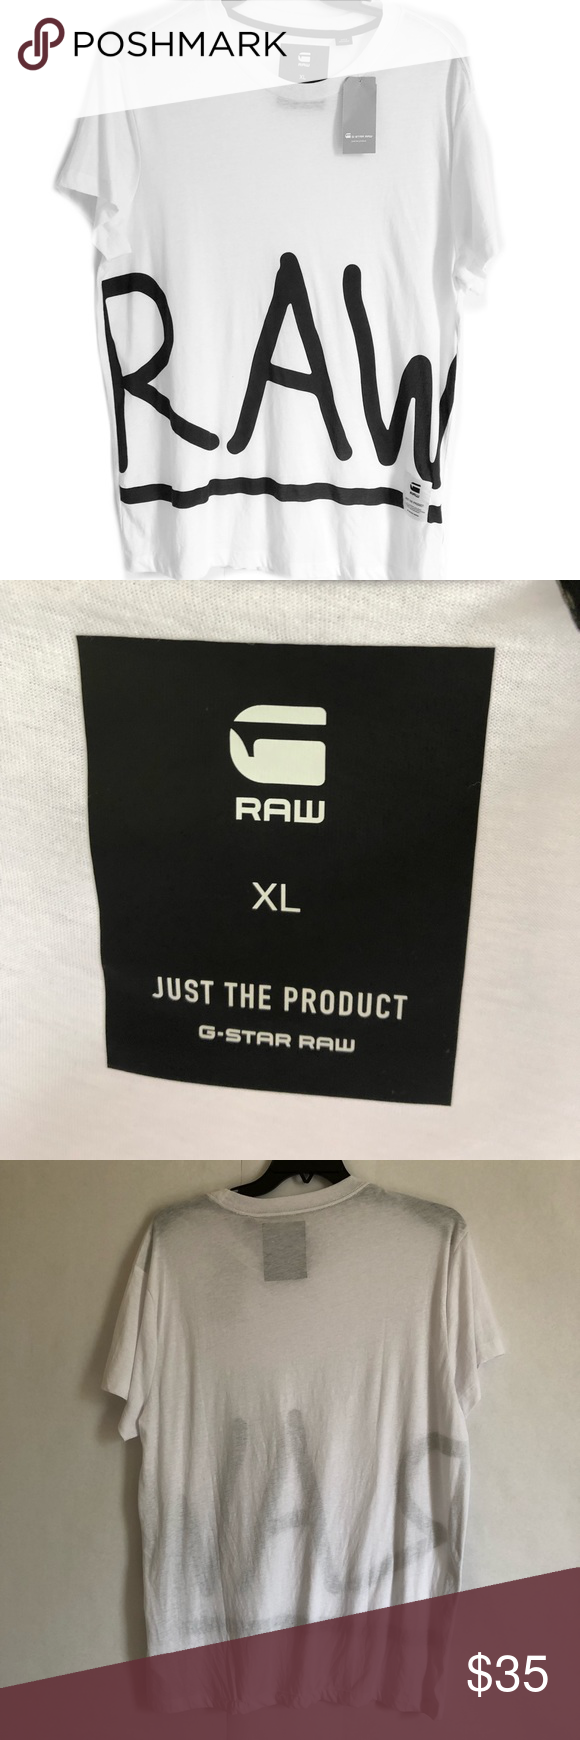 Nwt G Star Raw Mattow Camouflage Logo Graphic Tee Nwt G Star Raw Mattow Camouflage Logo Graphic Tee G Star Shirts Tees Short S Graphic Tees Logo Graphic Tees